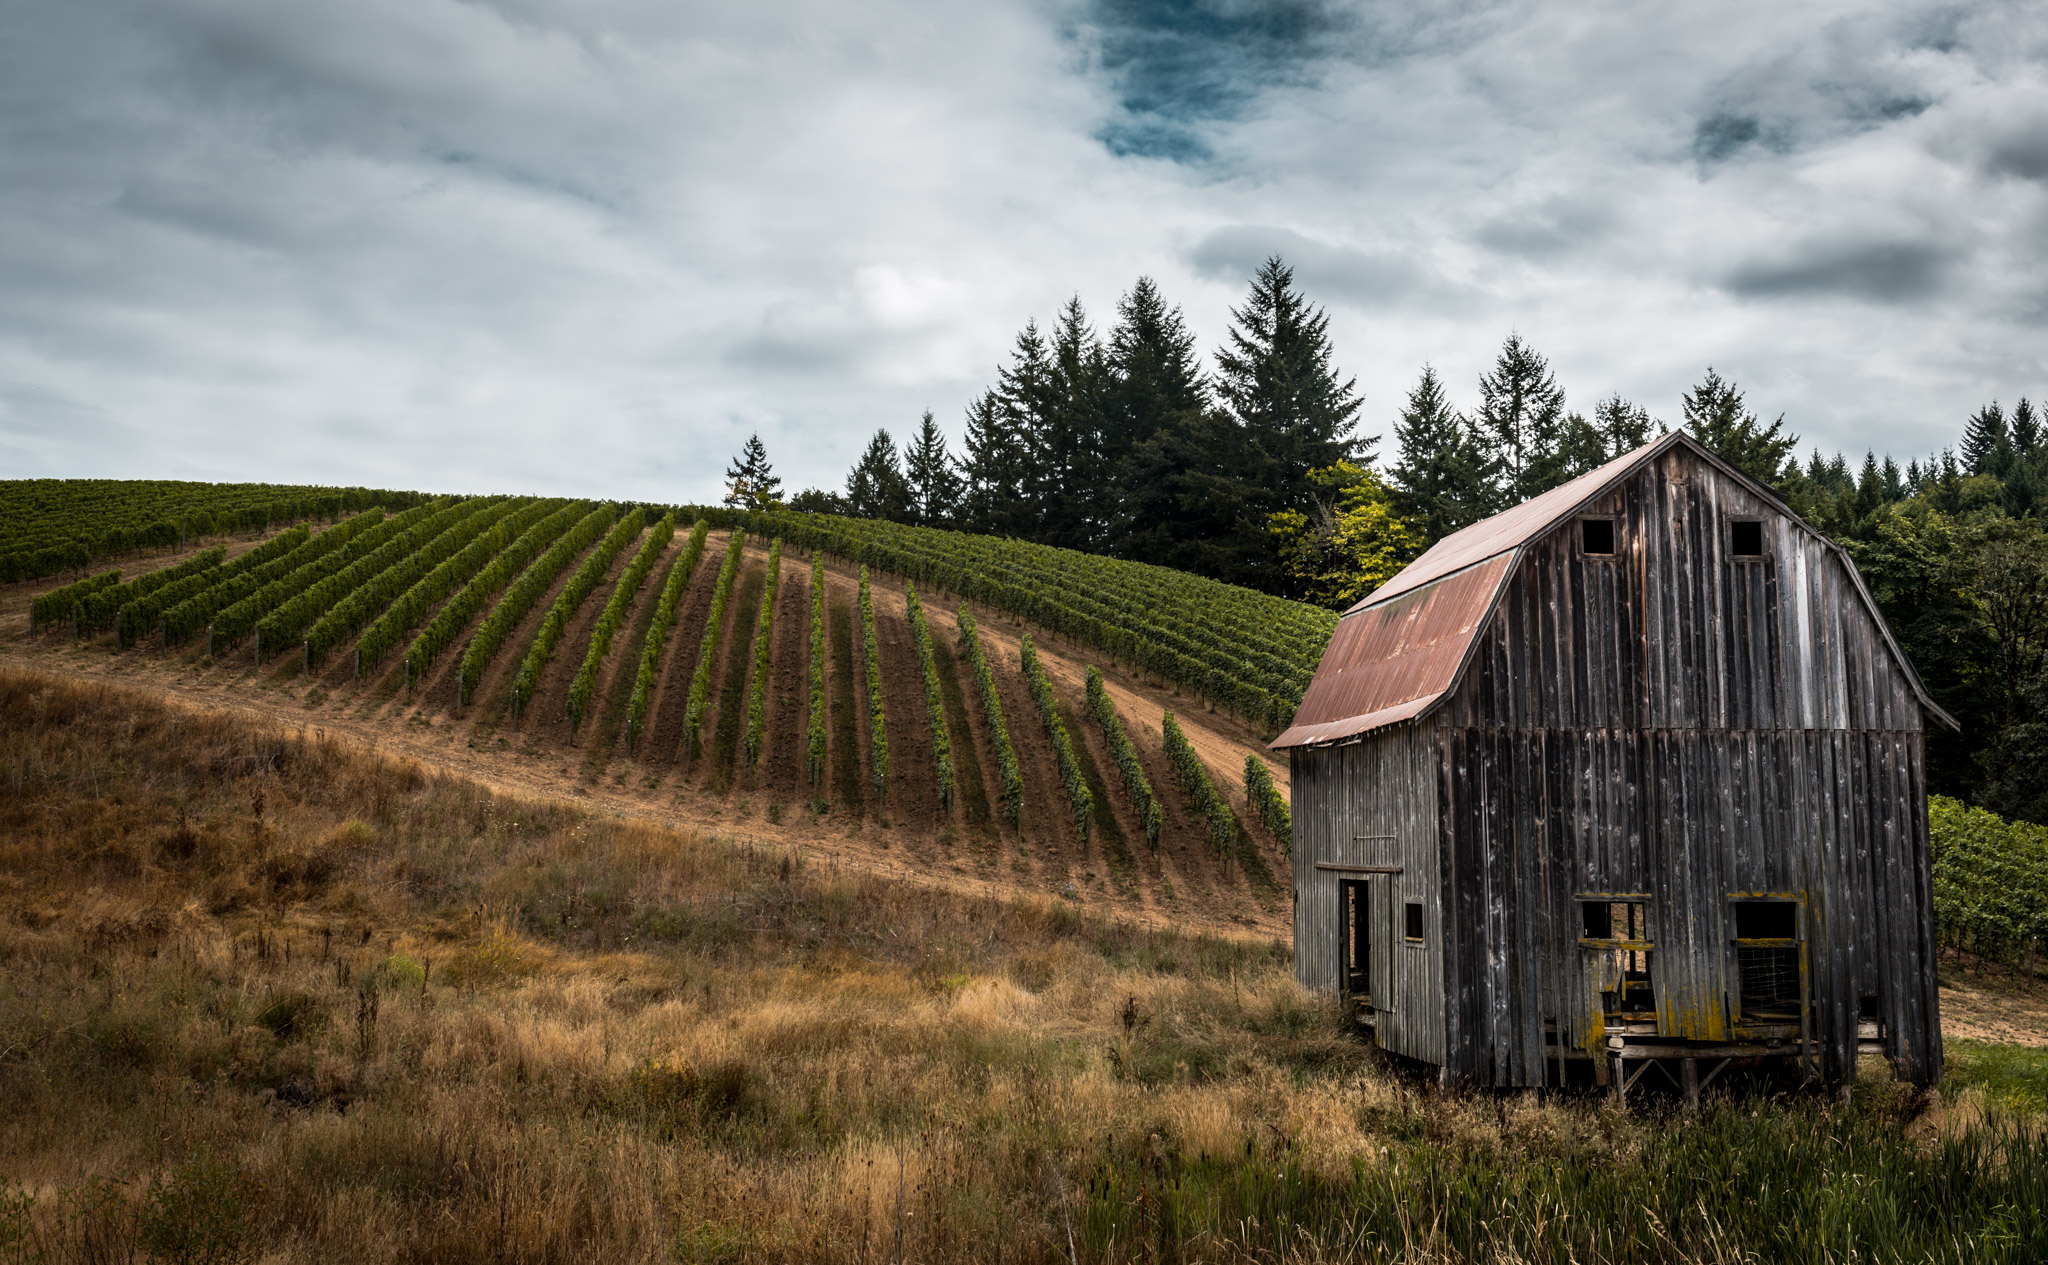 US : Oregon : At the base of Colene Clemens' estate in the Chehalem Mountains AVA